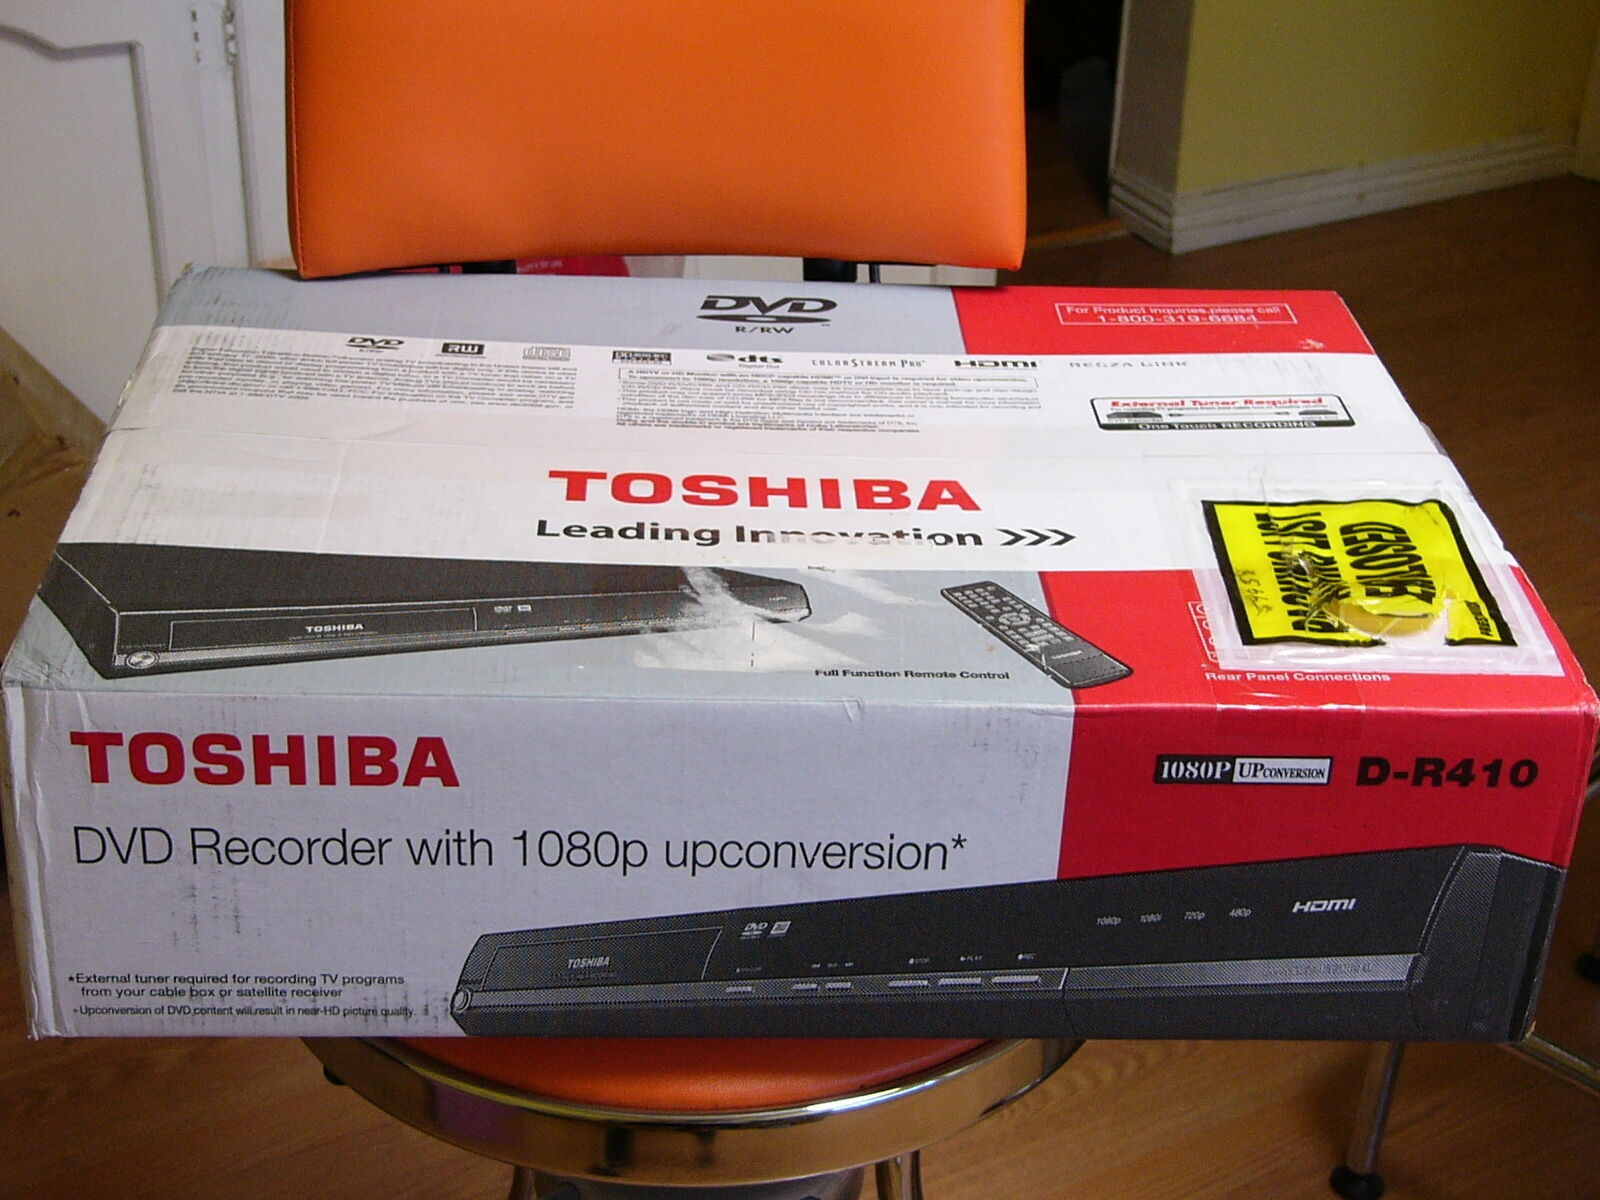 Toshiba freeview tv dvd harddrive recorder & player with remote.